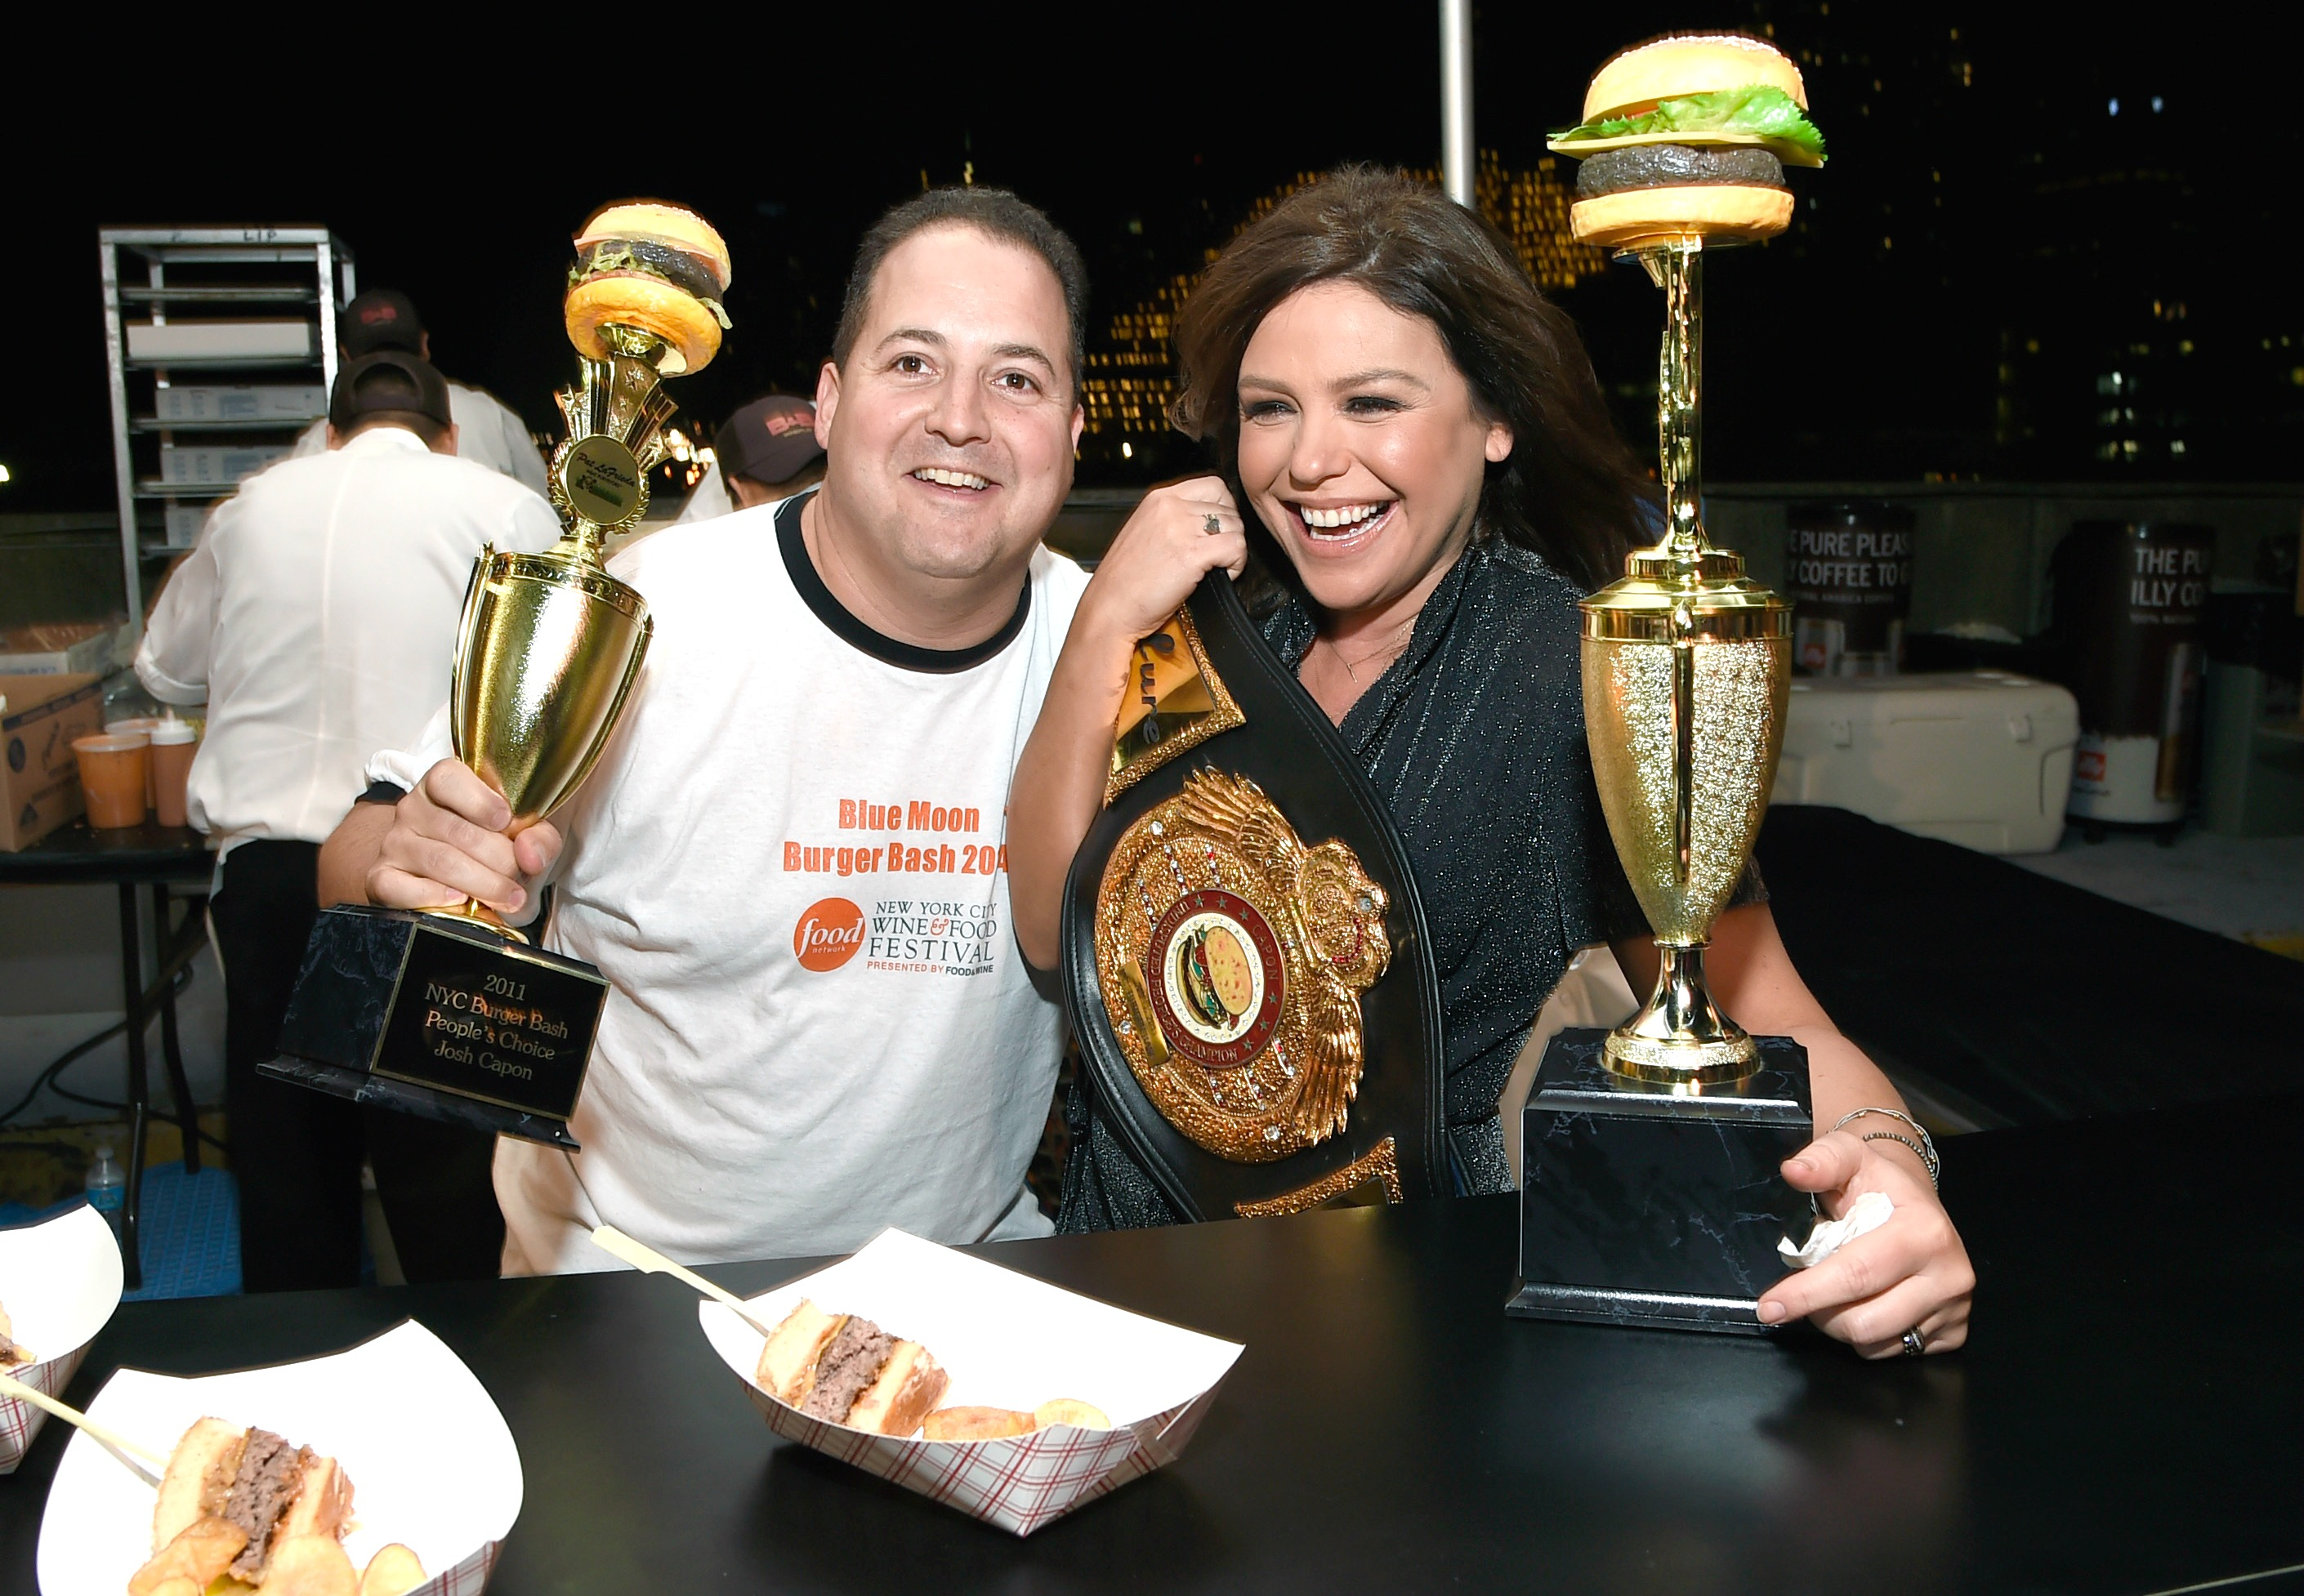 NYC Food & Wine Festival, Blue Moon Burger Bash, Rachael Ray